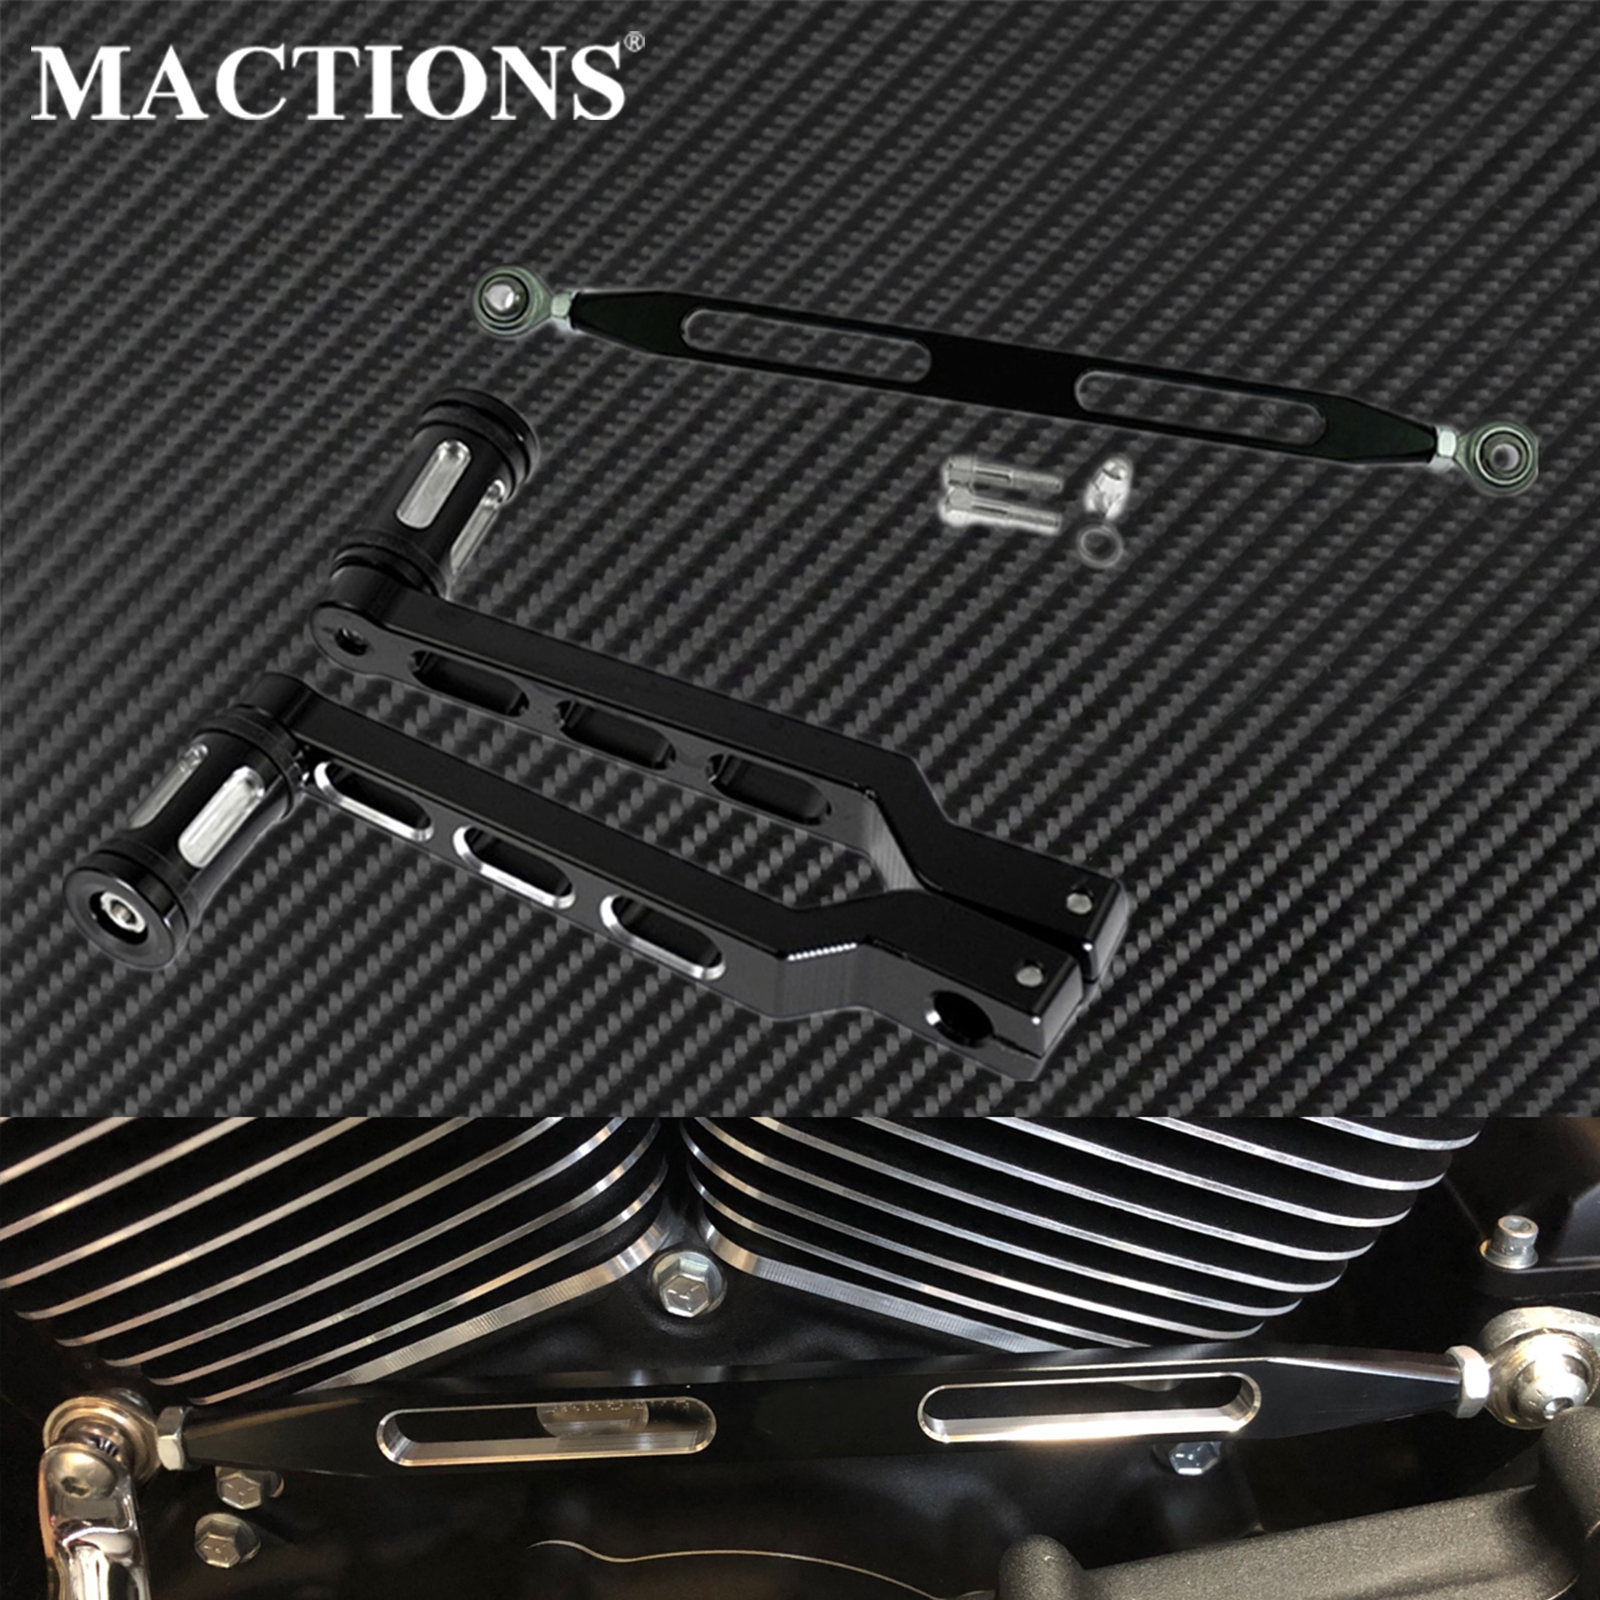 Motorcycle Heel Toe Gear Shifter Shift Lever with Shift Pegs 330mm Gear Shift Linkage Brake Clutch Lever For Harley Dyna Touring